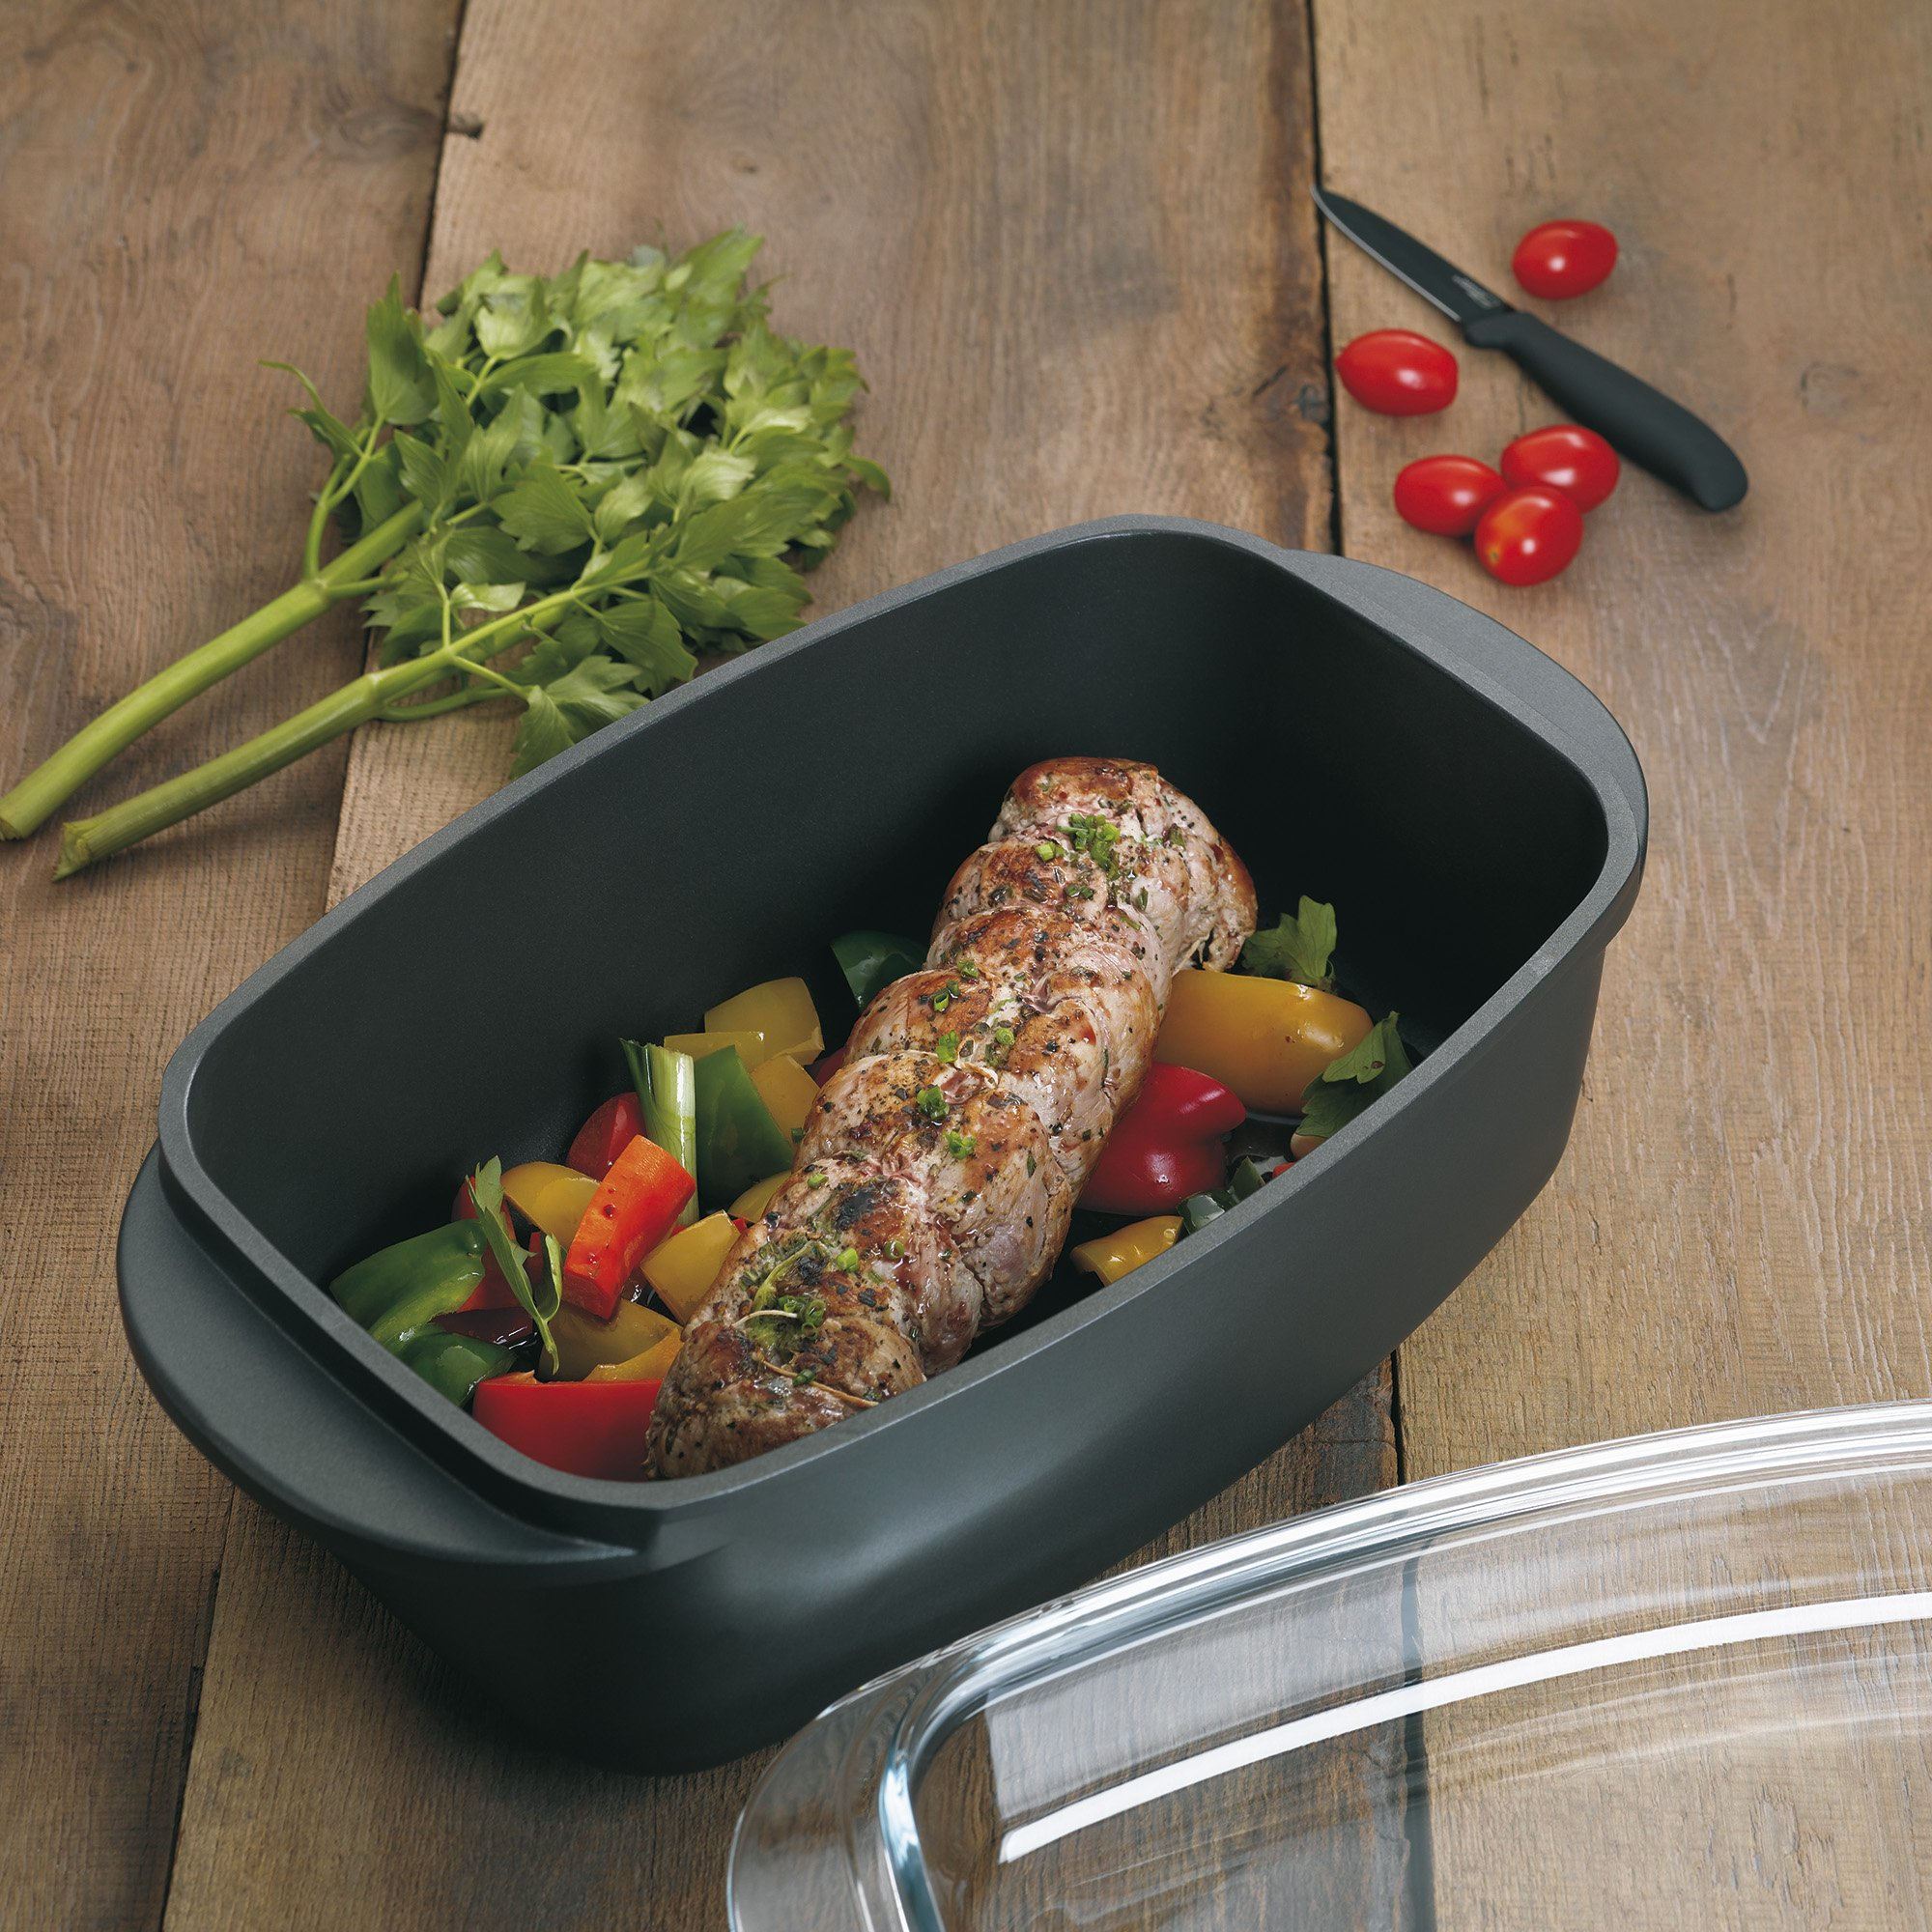 Kela Kerros 15152 Roasting Pan 5 L Rectangular with Greblon Stonehenge Non-Stick Coating by Kela (Image #6)